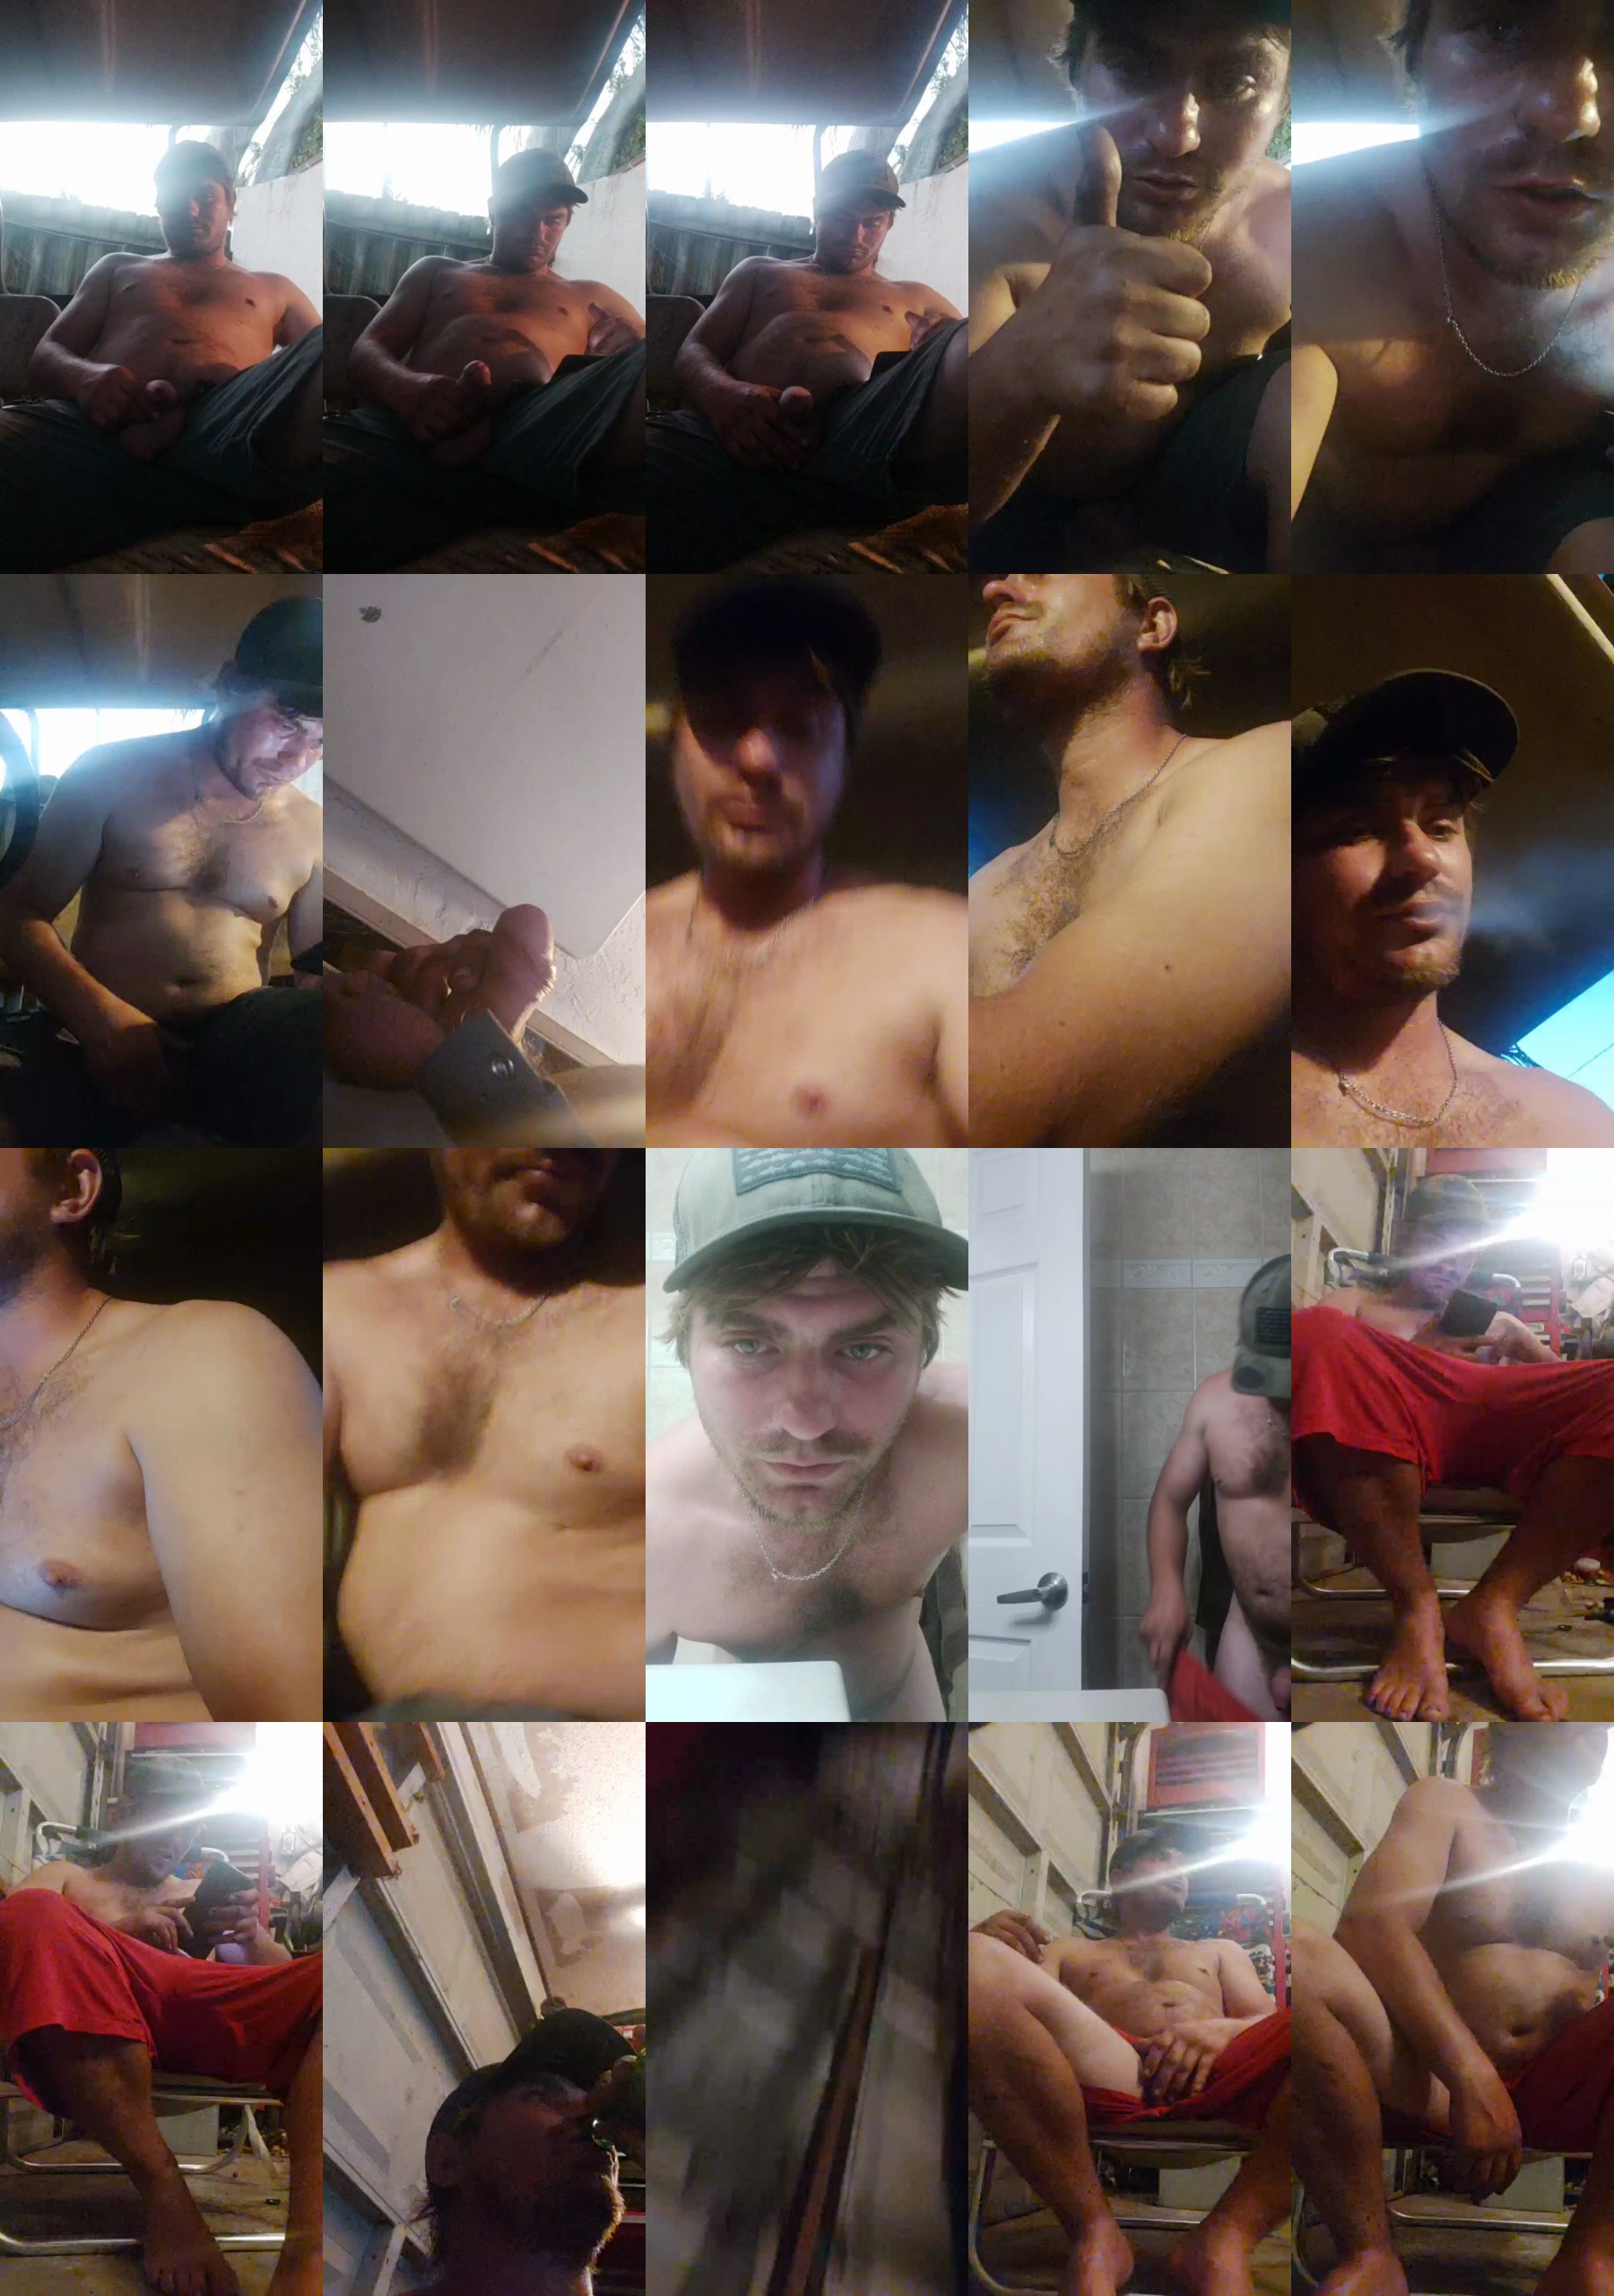 Alexjt104 Cam4 03-03-2021 Recorded Video Topless